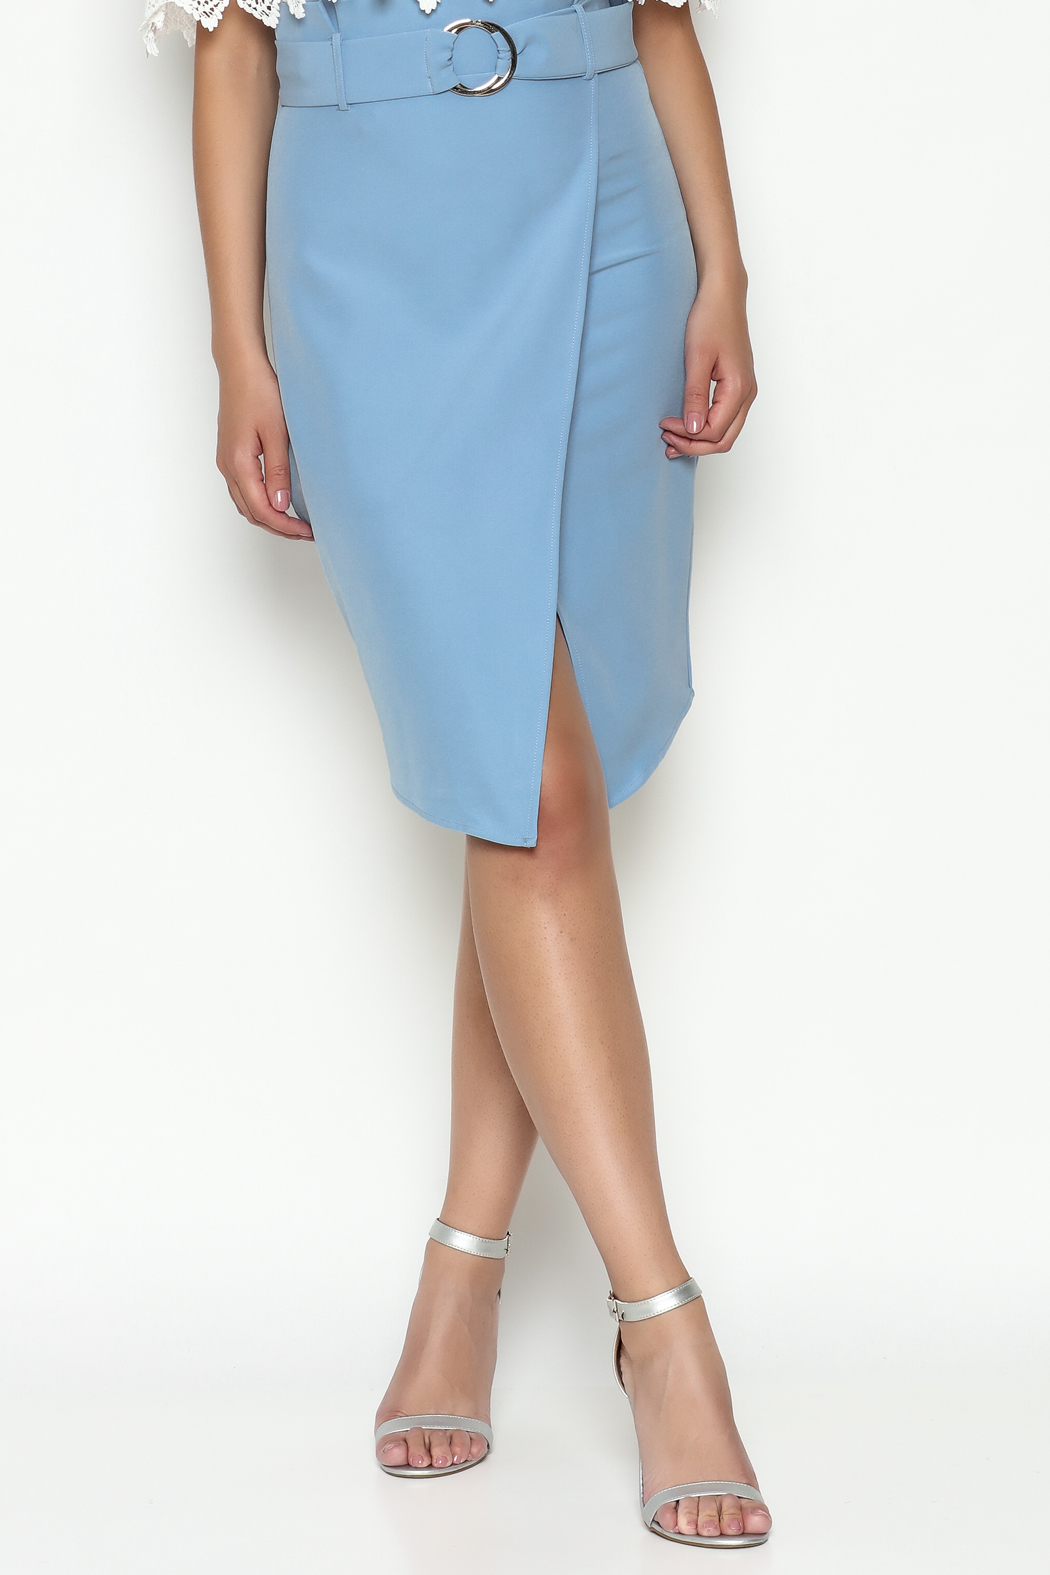 Jealous Tomato Blue Belted Skirt - Front Cropped Image